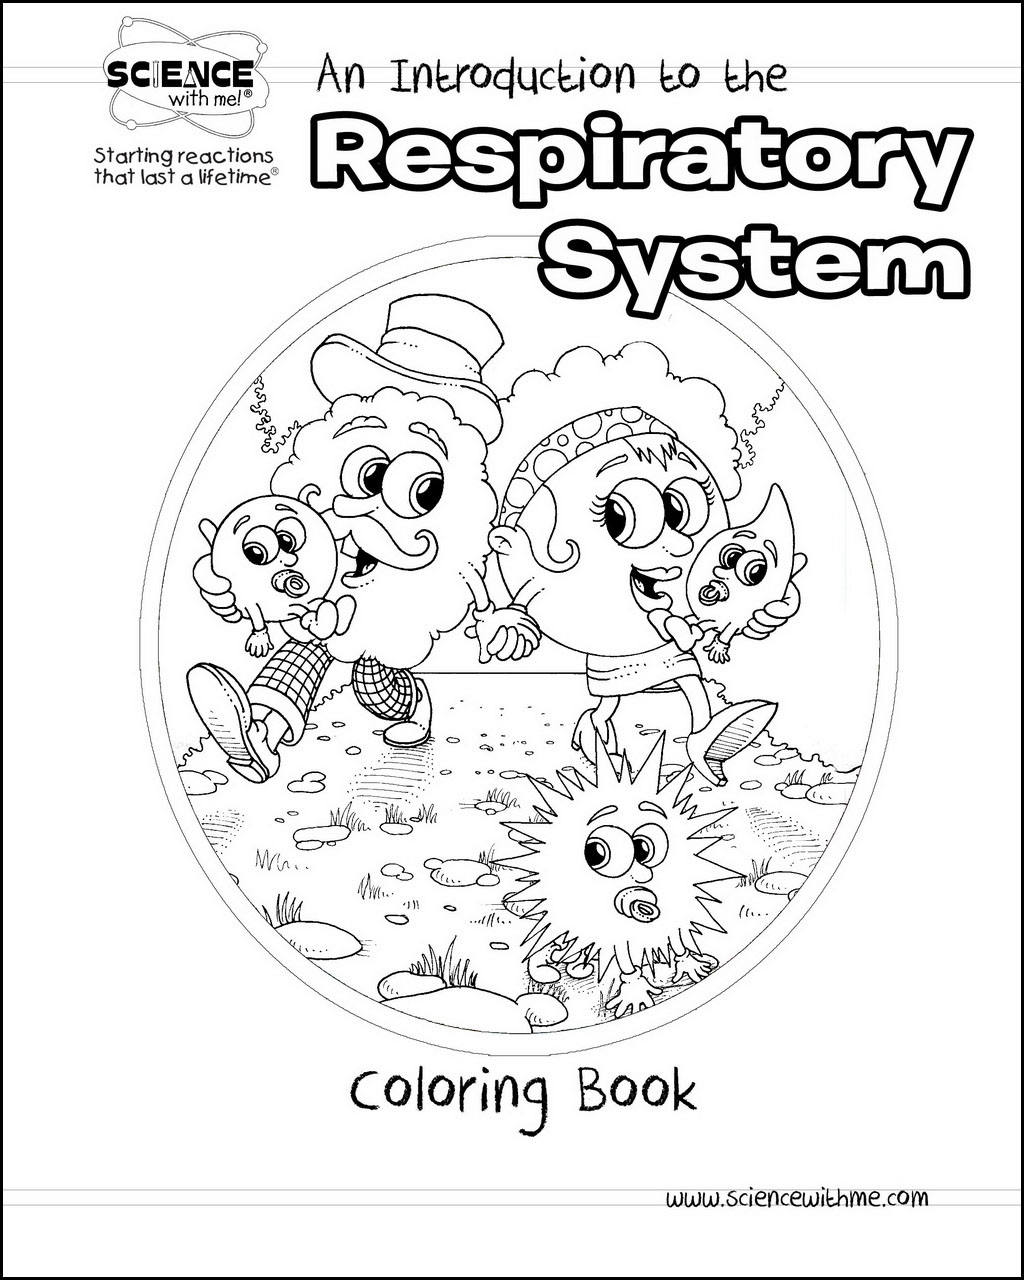 Respiratory system drawing at getdrawings free for personal 1024x1280 an introduction to the respiratory system coloring book ccuart Gallery